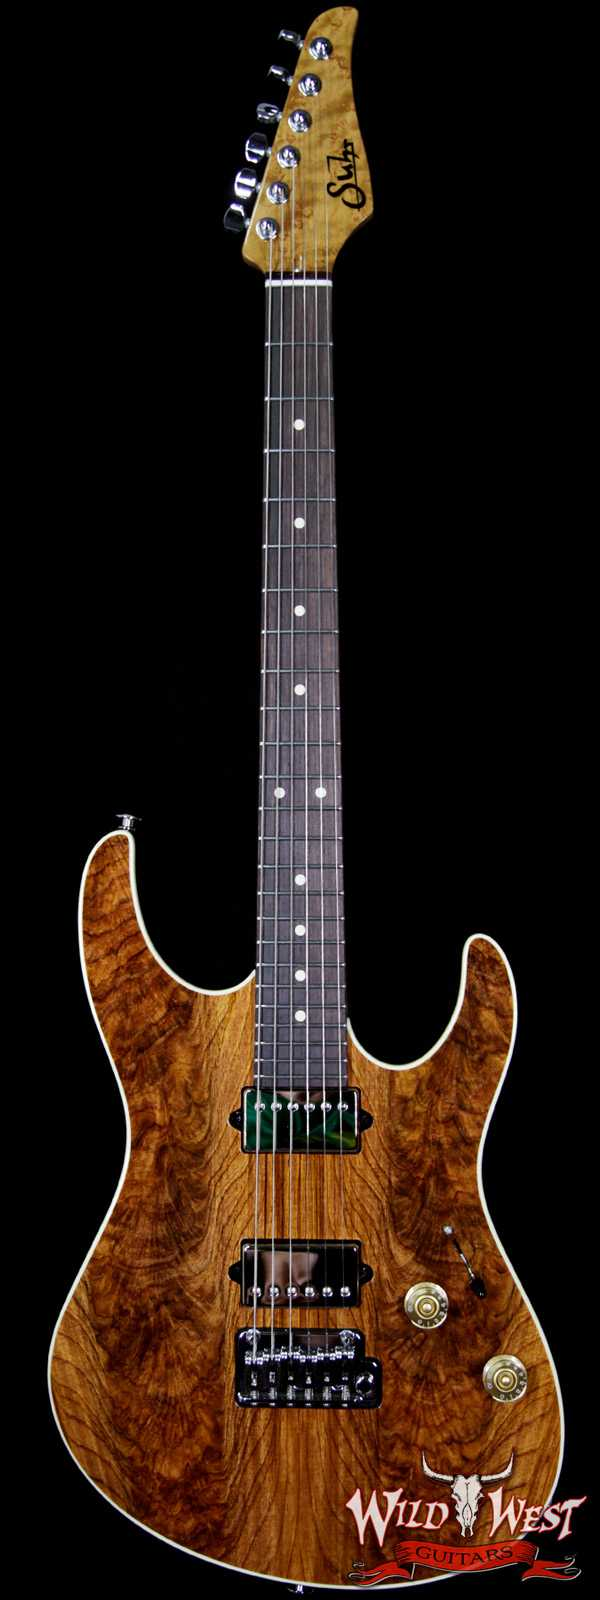 Suhr Modern HH Guatamalan Rosewood Top Basswood Body Roasted Birdseye Maple Neck Natural